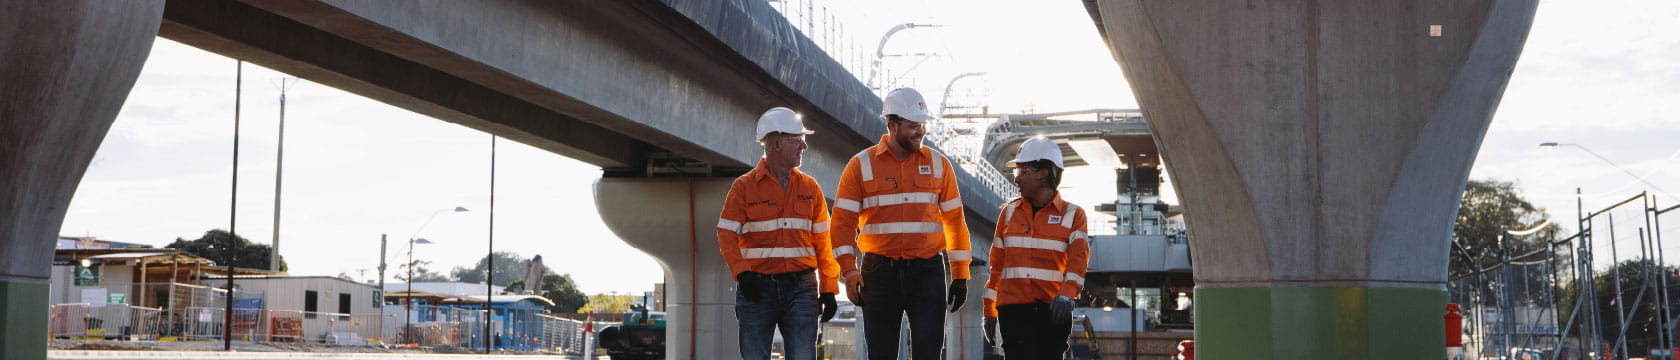 3 workers walking under rail bridge